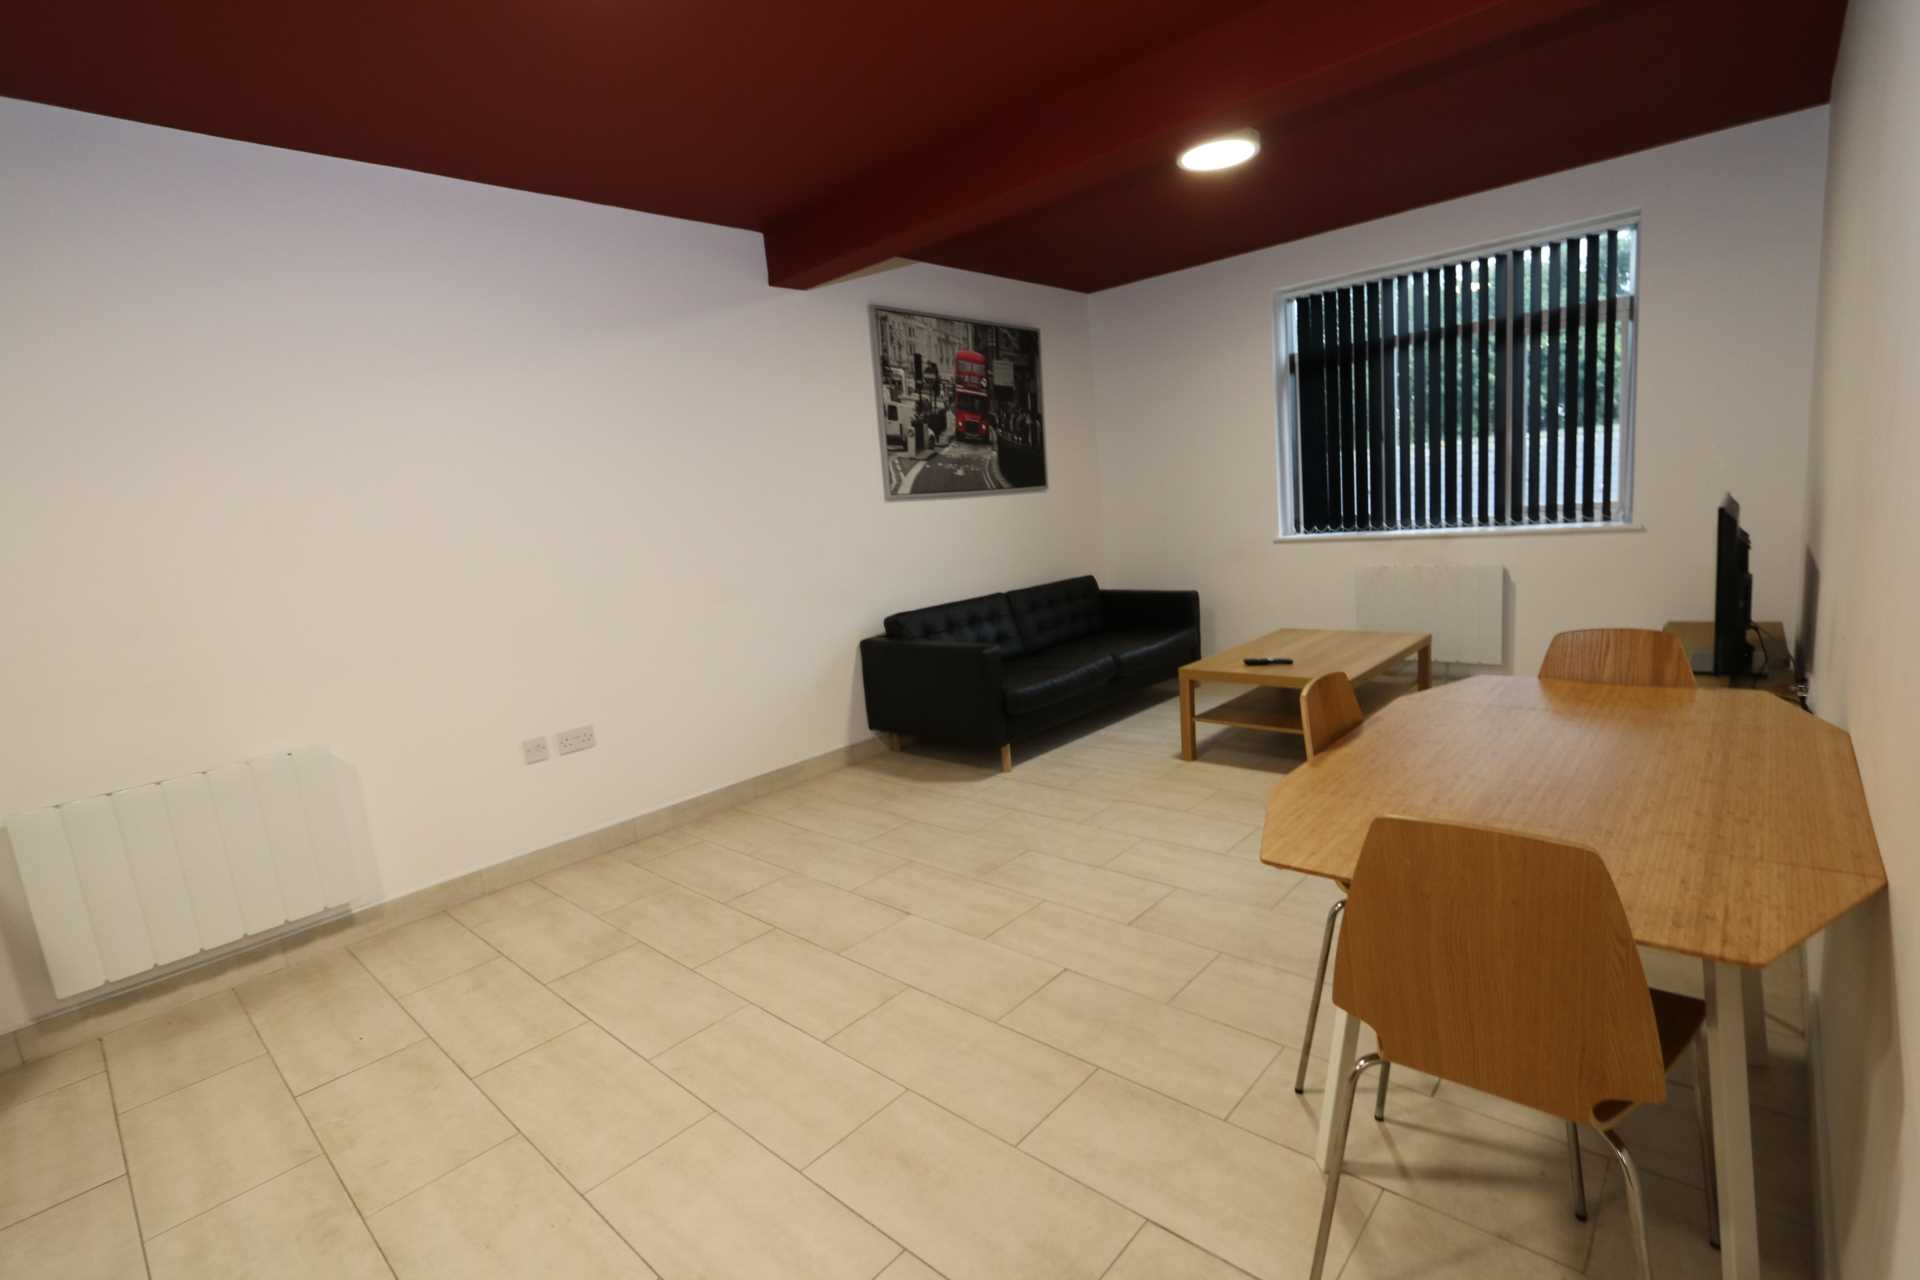 Room 8C Kings Court new development fully furnished student accommodation with en suite, all bills included - NO FEES, Image 6